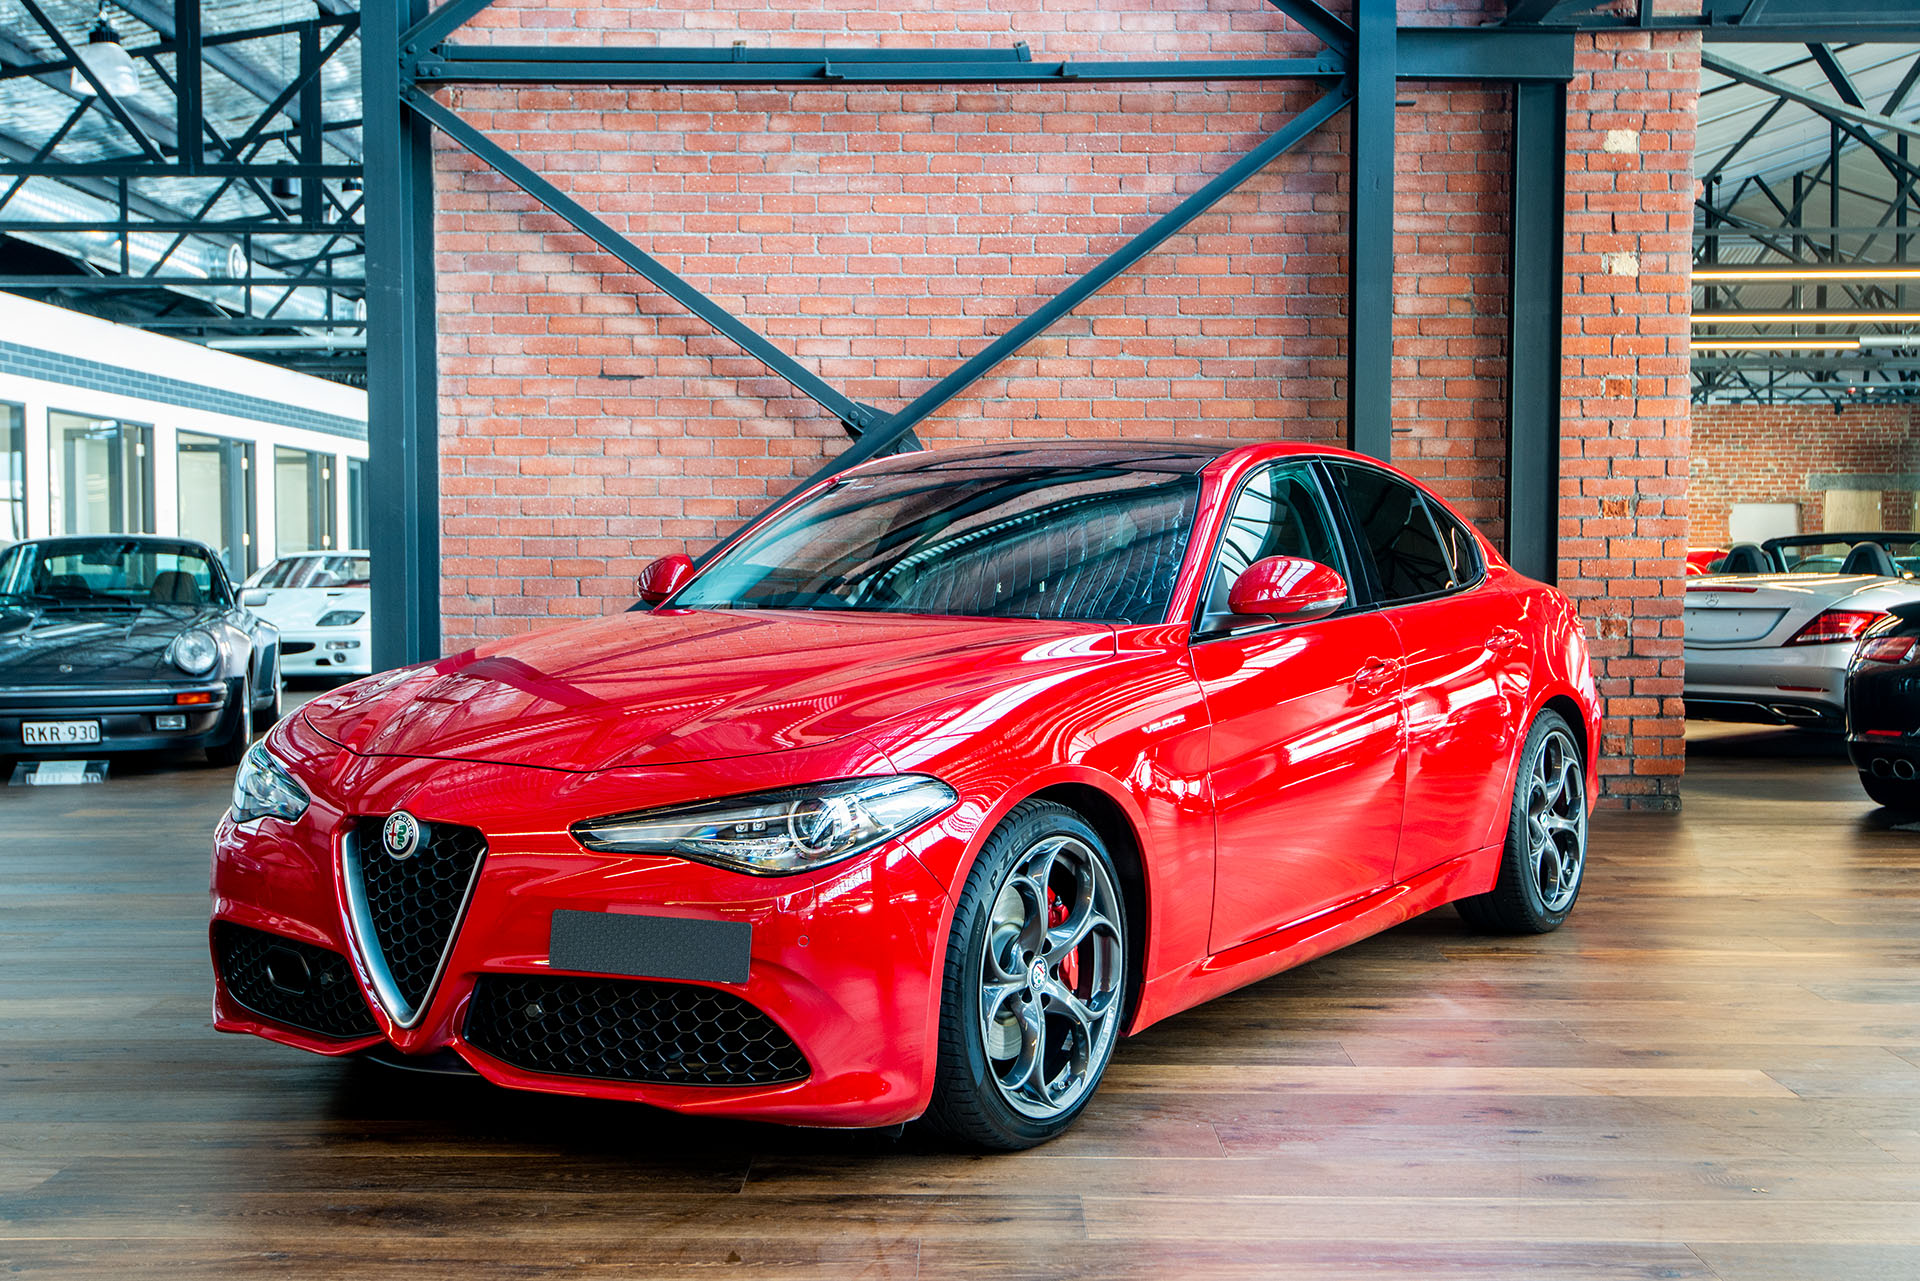 Alfa Romeo Giulia >> 2016 Alfa Romeo Giulia Veloce (MY17) - Richmonds - Classic and Prestige Cars - Storage and Sales ...